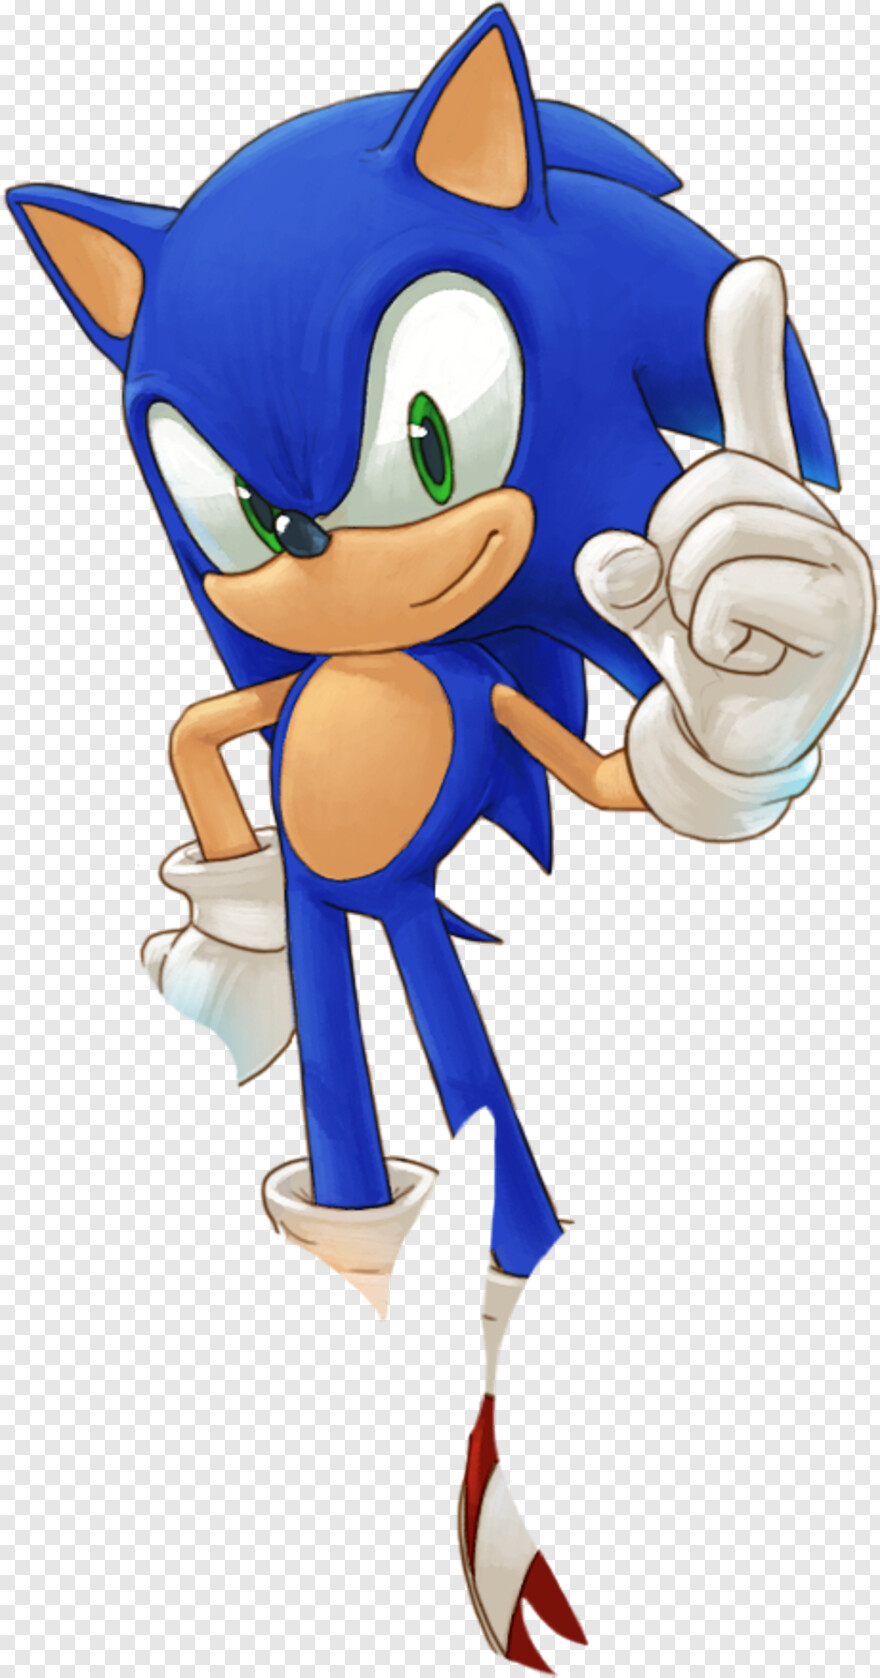 Sonic The Hedgehog Sonic The Hedgehog Png Hd Png Download 461x879 246468 Png Image Pngjoy